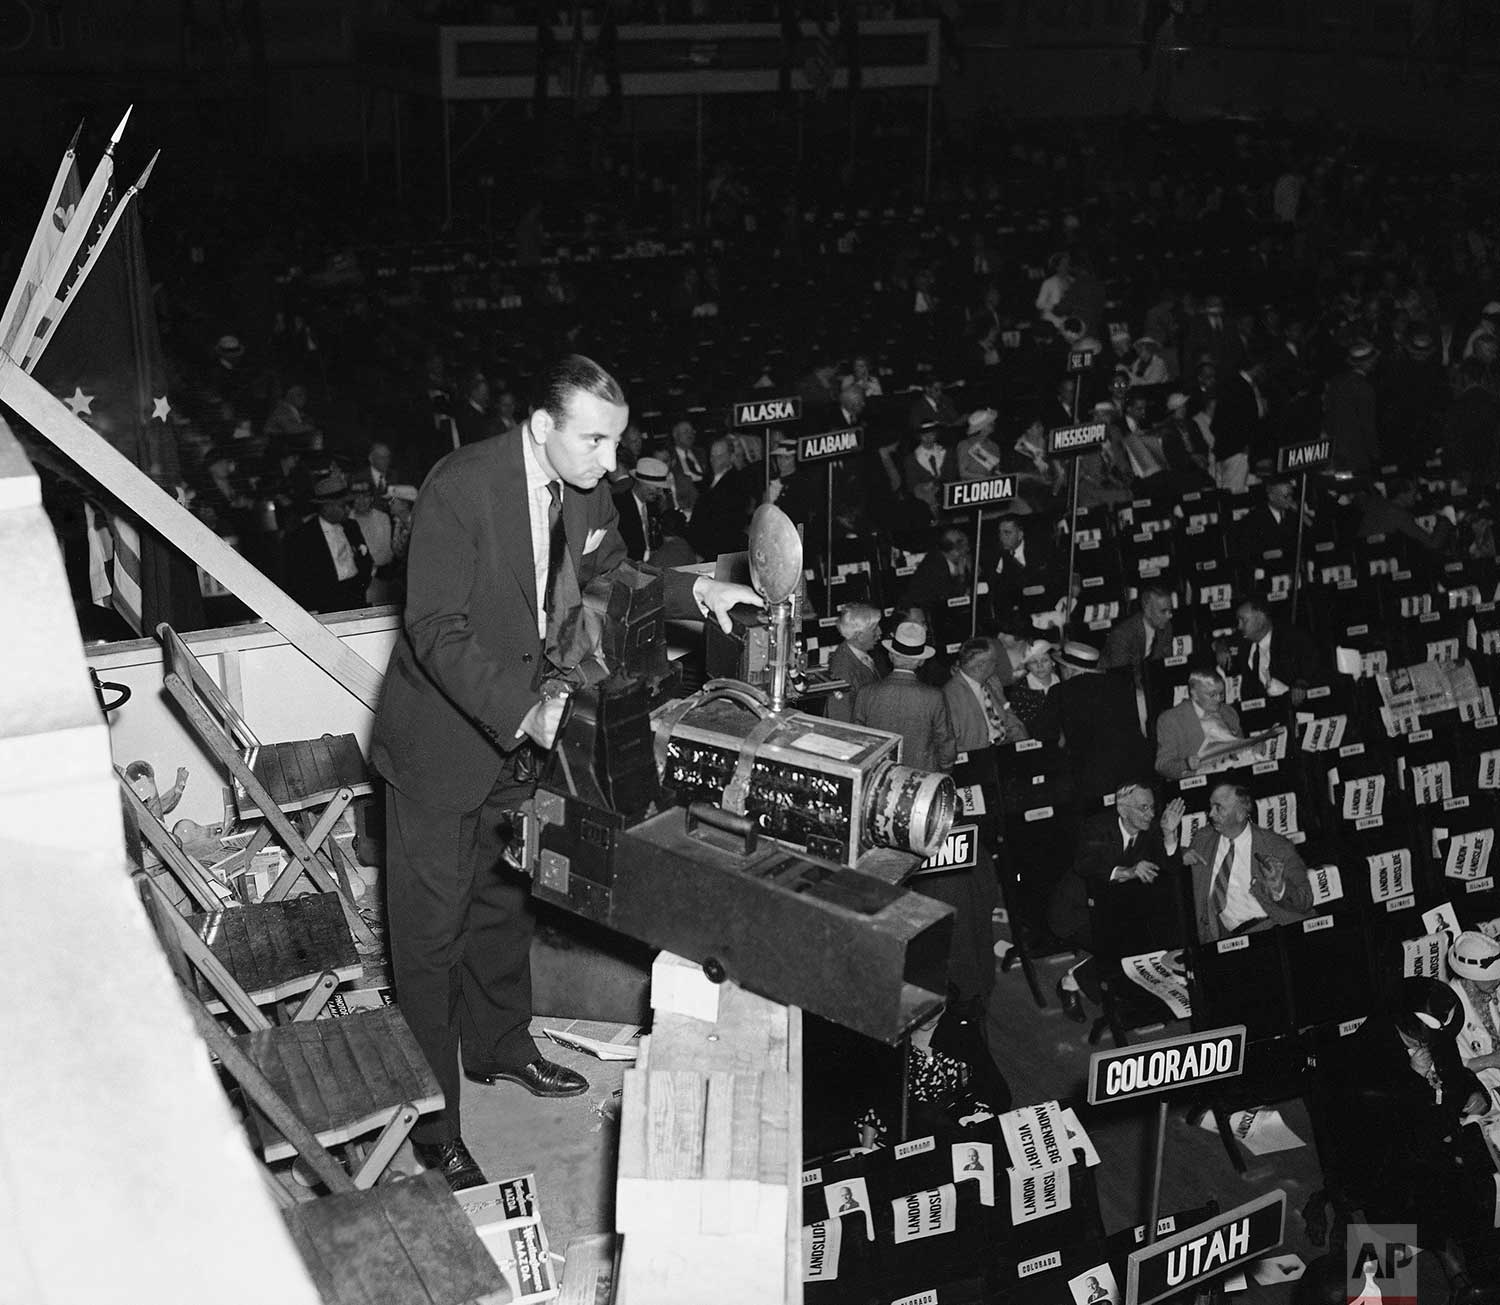 Associated Press photographer Murray Becker of New York takes a general view picture of the scene at the 1936 Republican National Convention in Cleveland, Ohio in the Public Auditorium, using a 28-inch camera, June 1936. (AP Photo)